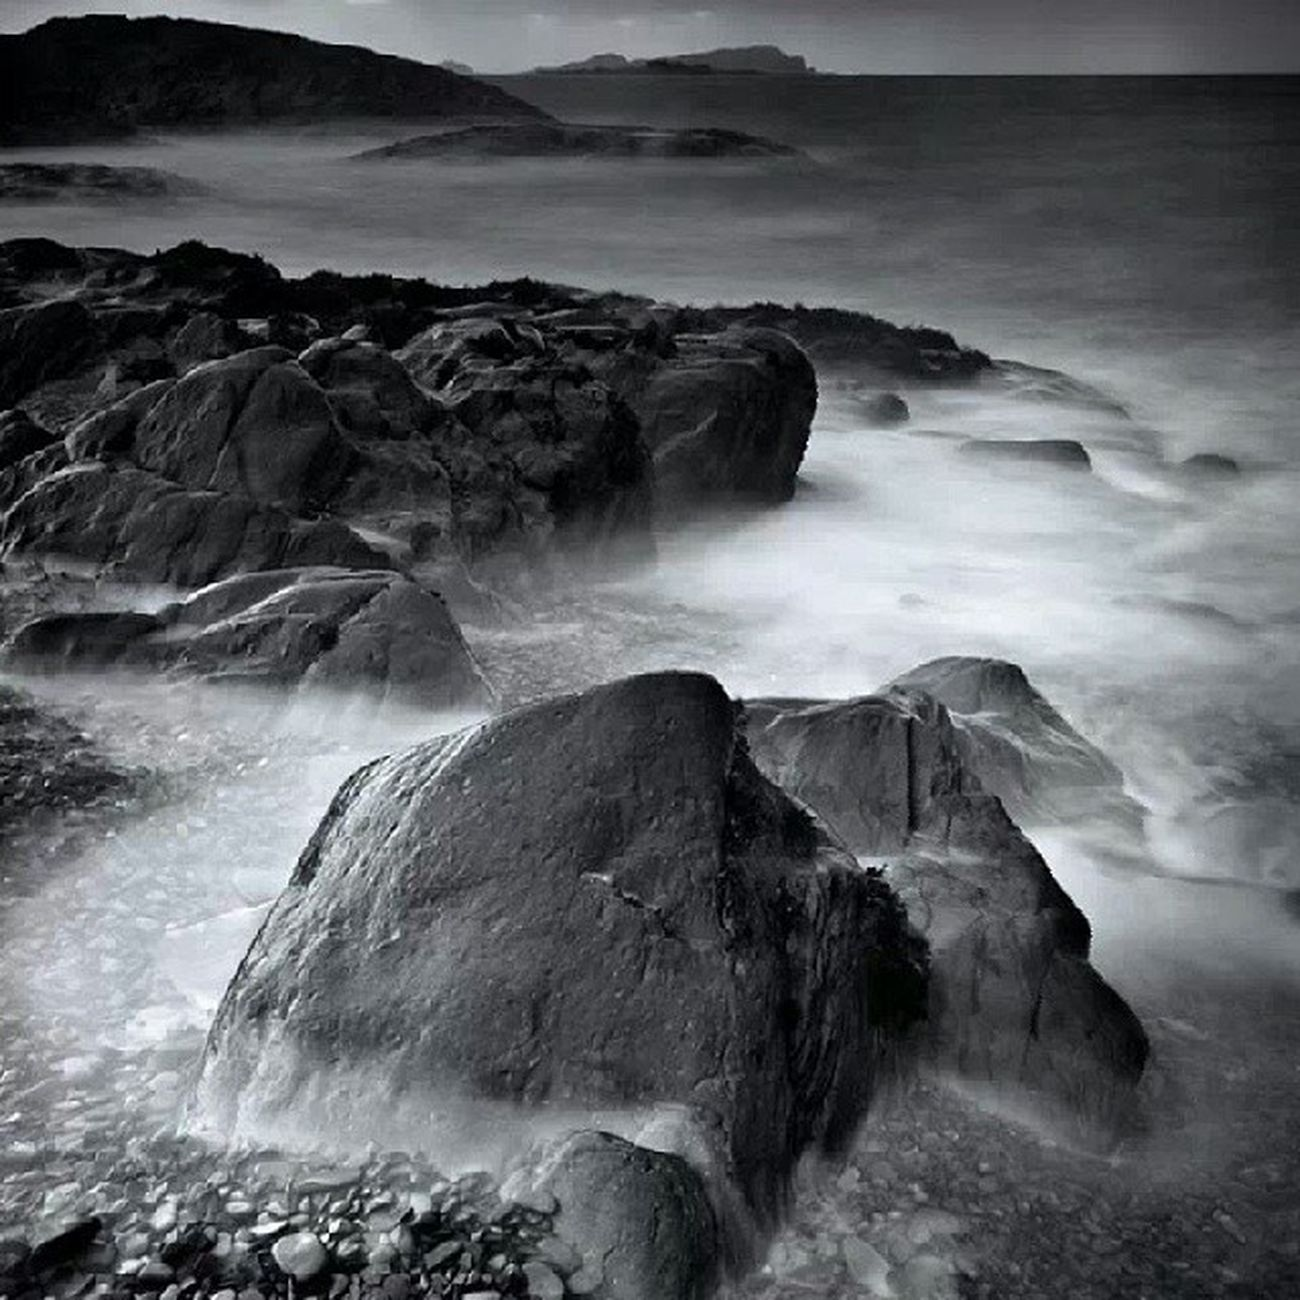 Cullipool Luing Slate Scotland insta_scotland lien mono seascapes landscape blackandwhite landscape_lovers nature_lovers nature_seekers instagram instacool www.damianshields.com